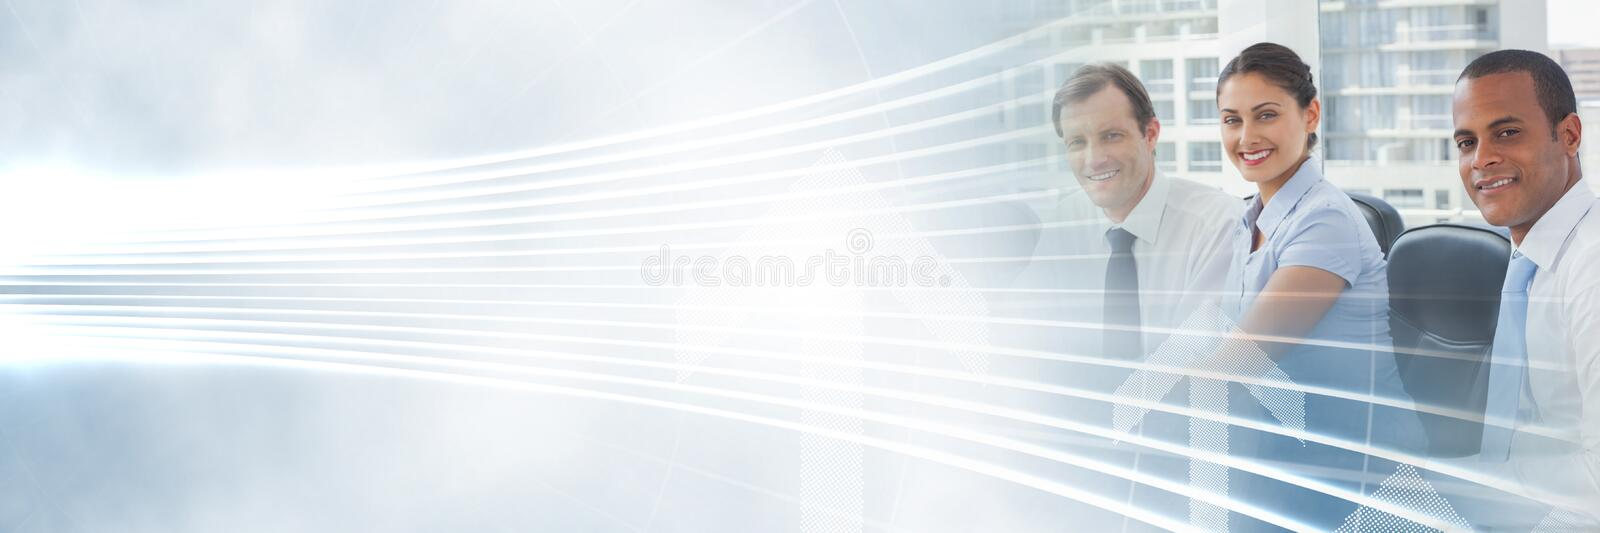 Business people having a meeting with illuminated curved lines transition effect. Digital composite of Business people having a meeting with illuminated curved stock image